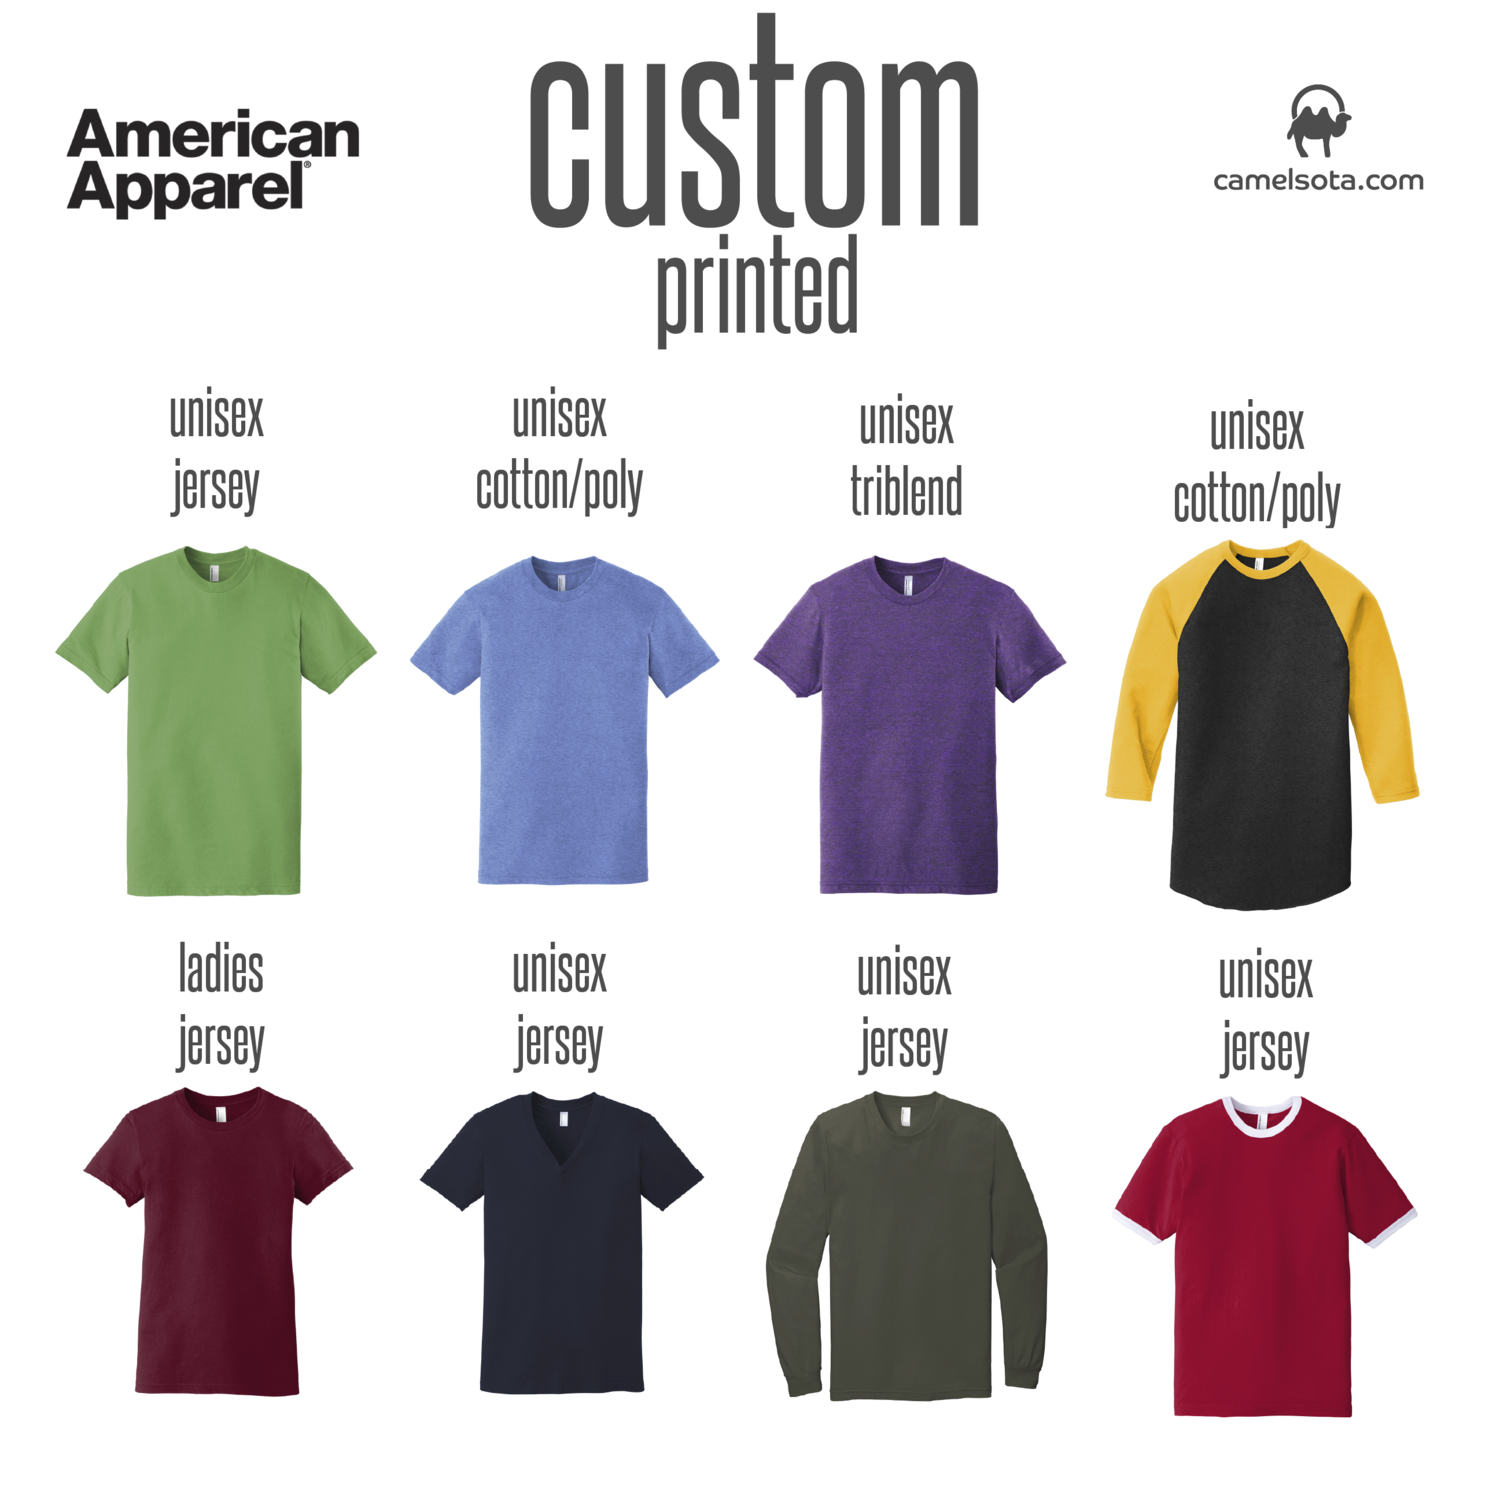 Custom American Apparel Brand Shirts